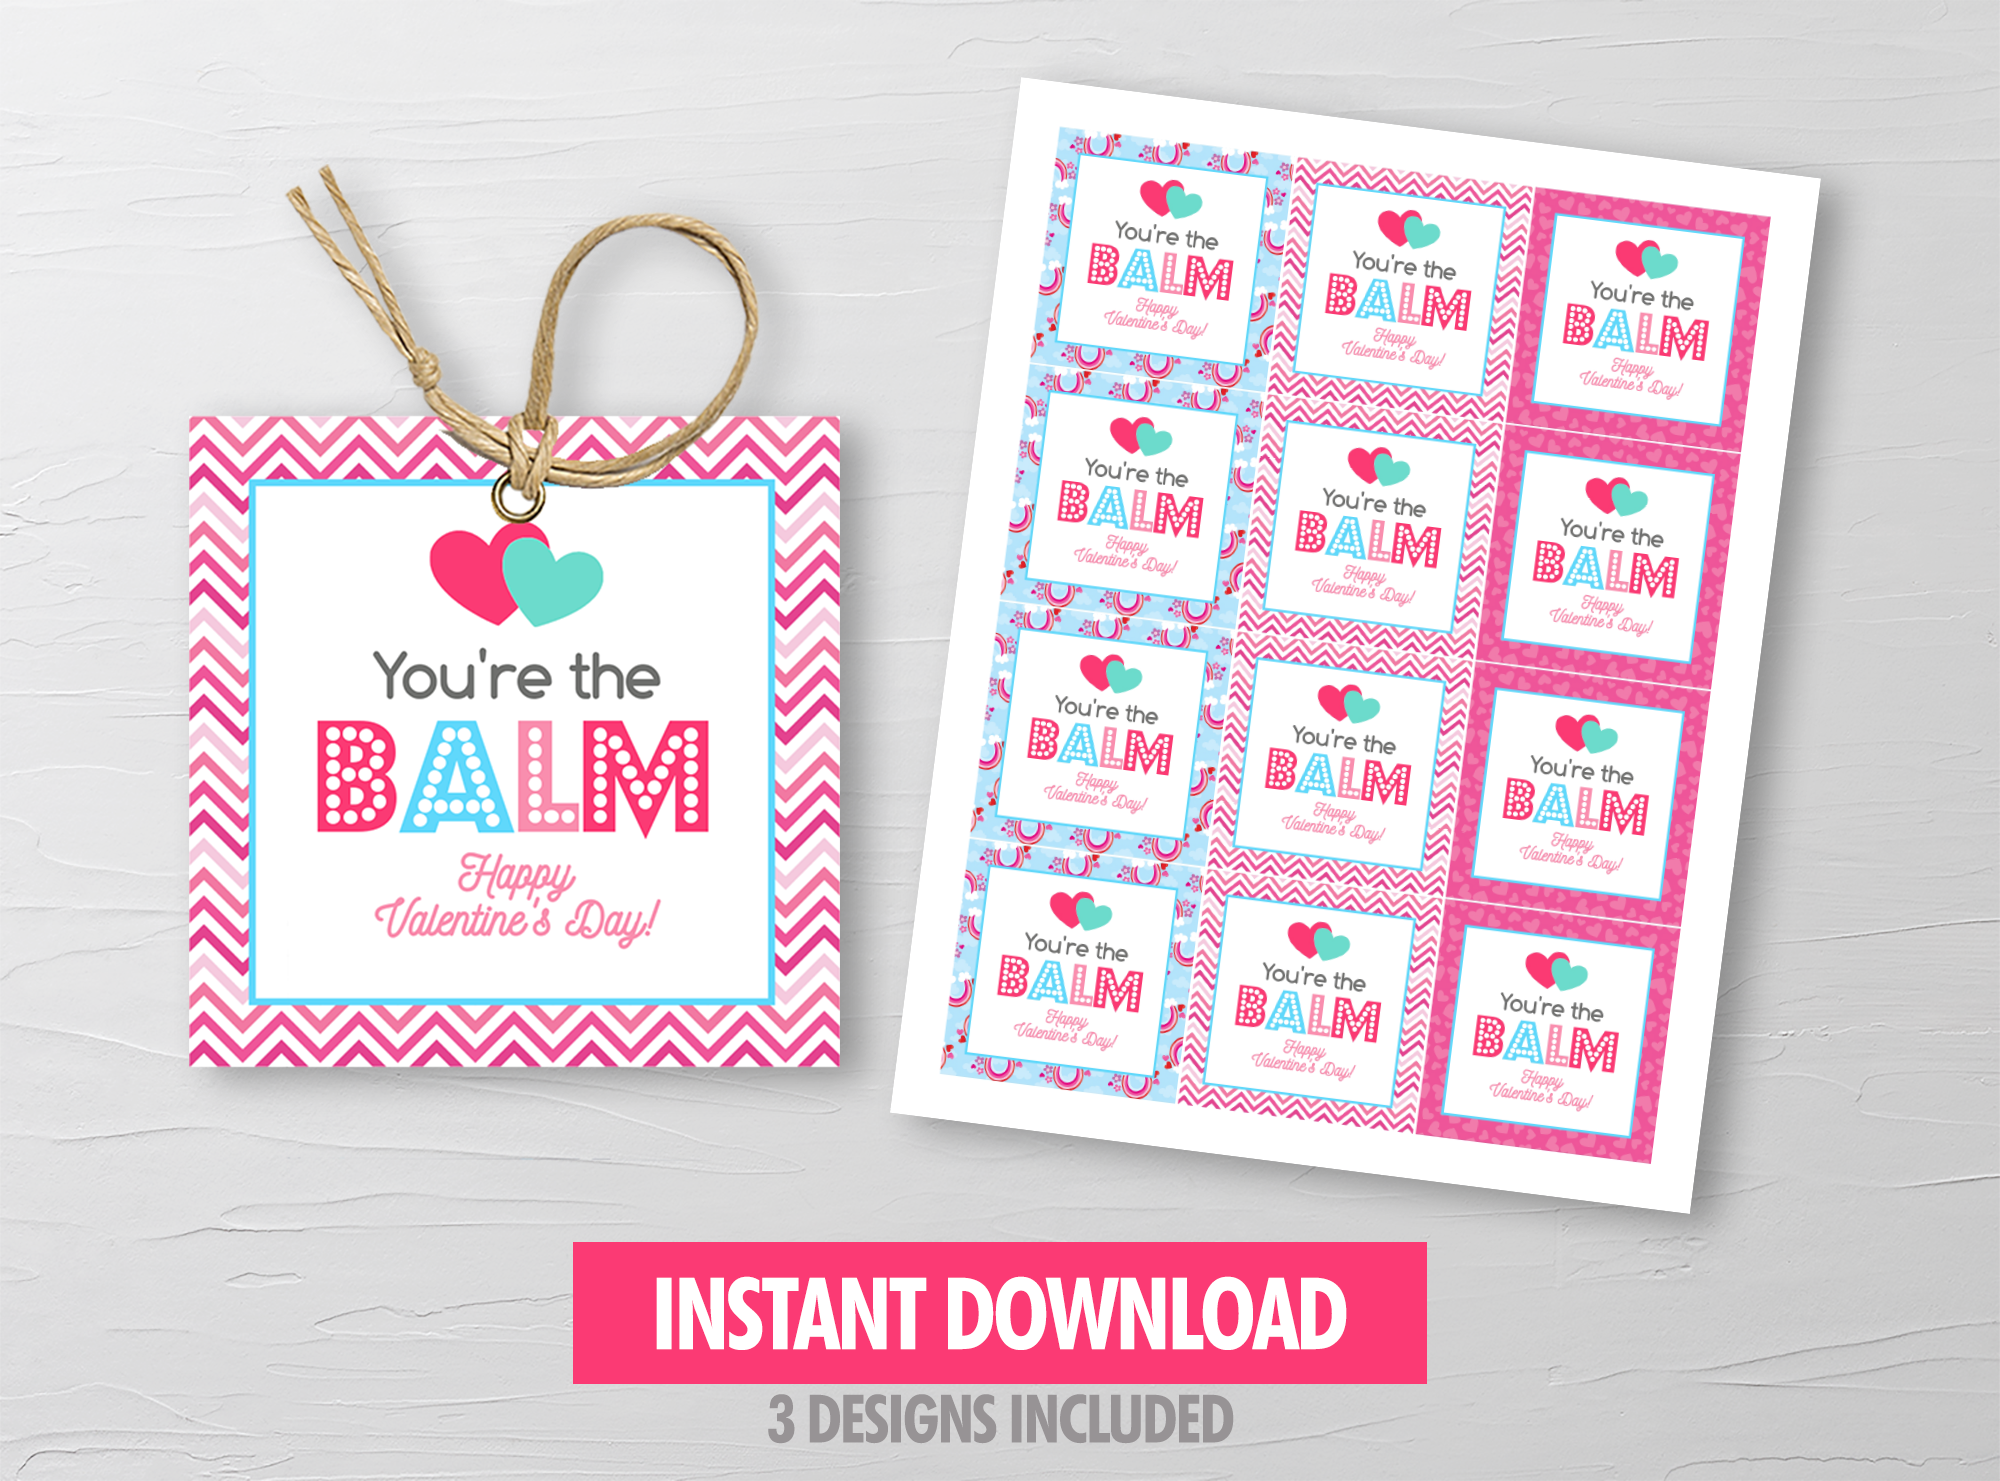 You're the balm gift tag, Printable Lip Balm Square Label, School Exchange Ideas, Instant Download - TitaTipsPrintables